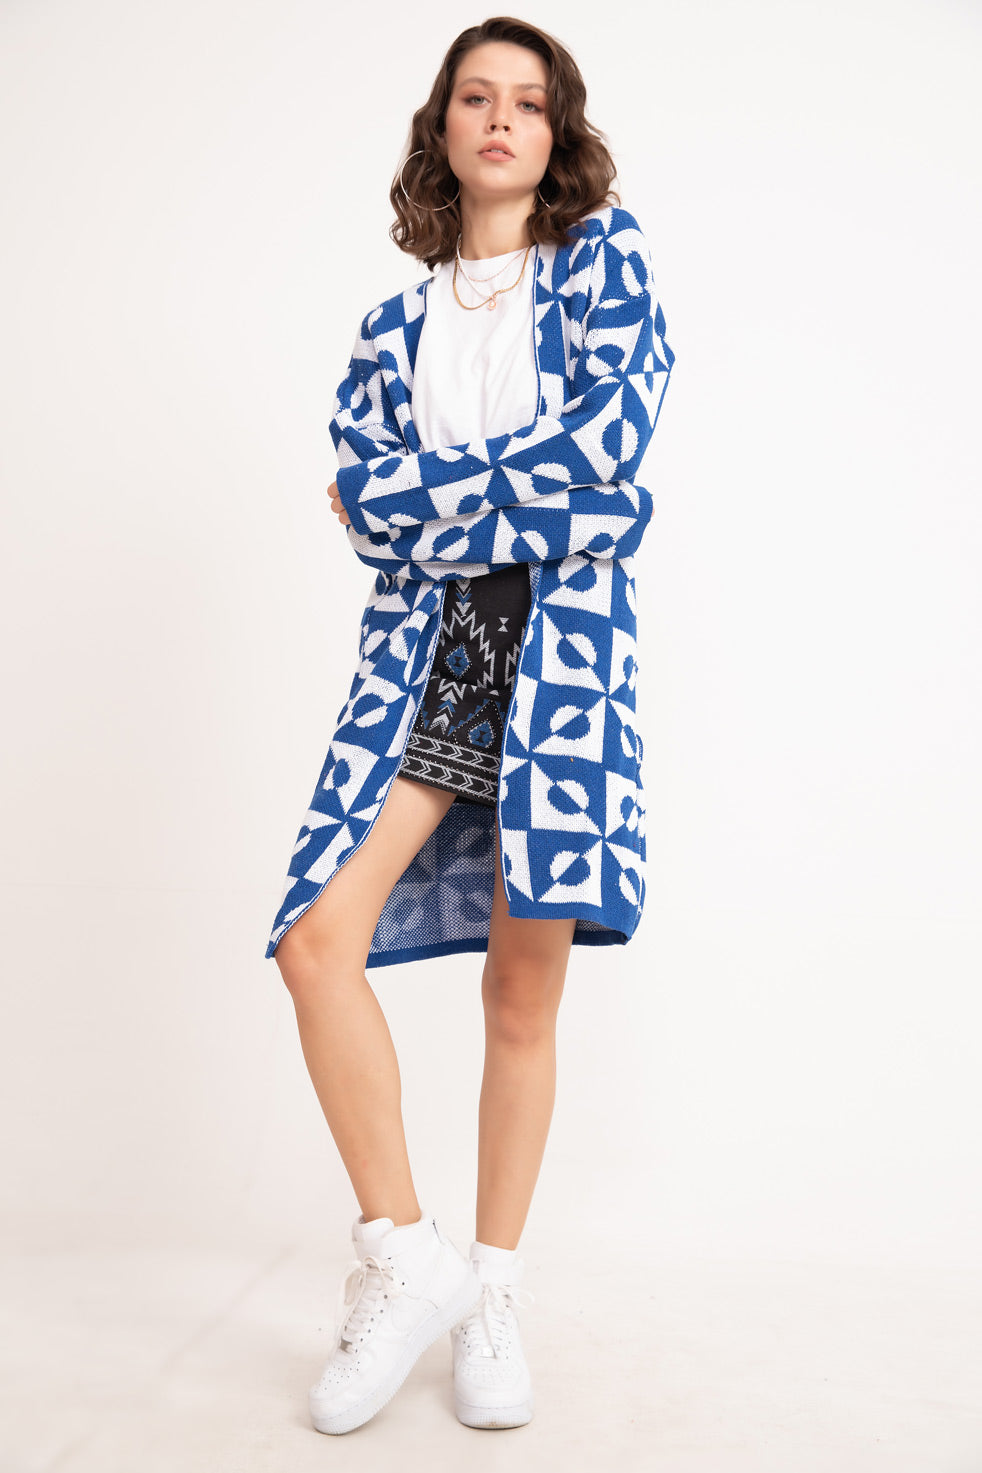 Women's Patterned Blue Cardigan